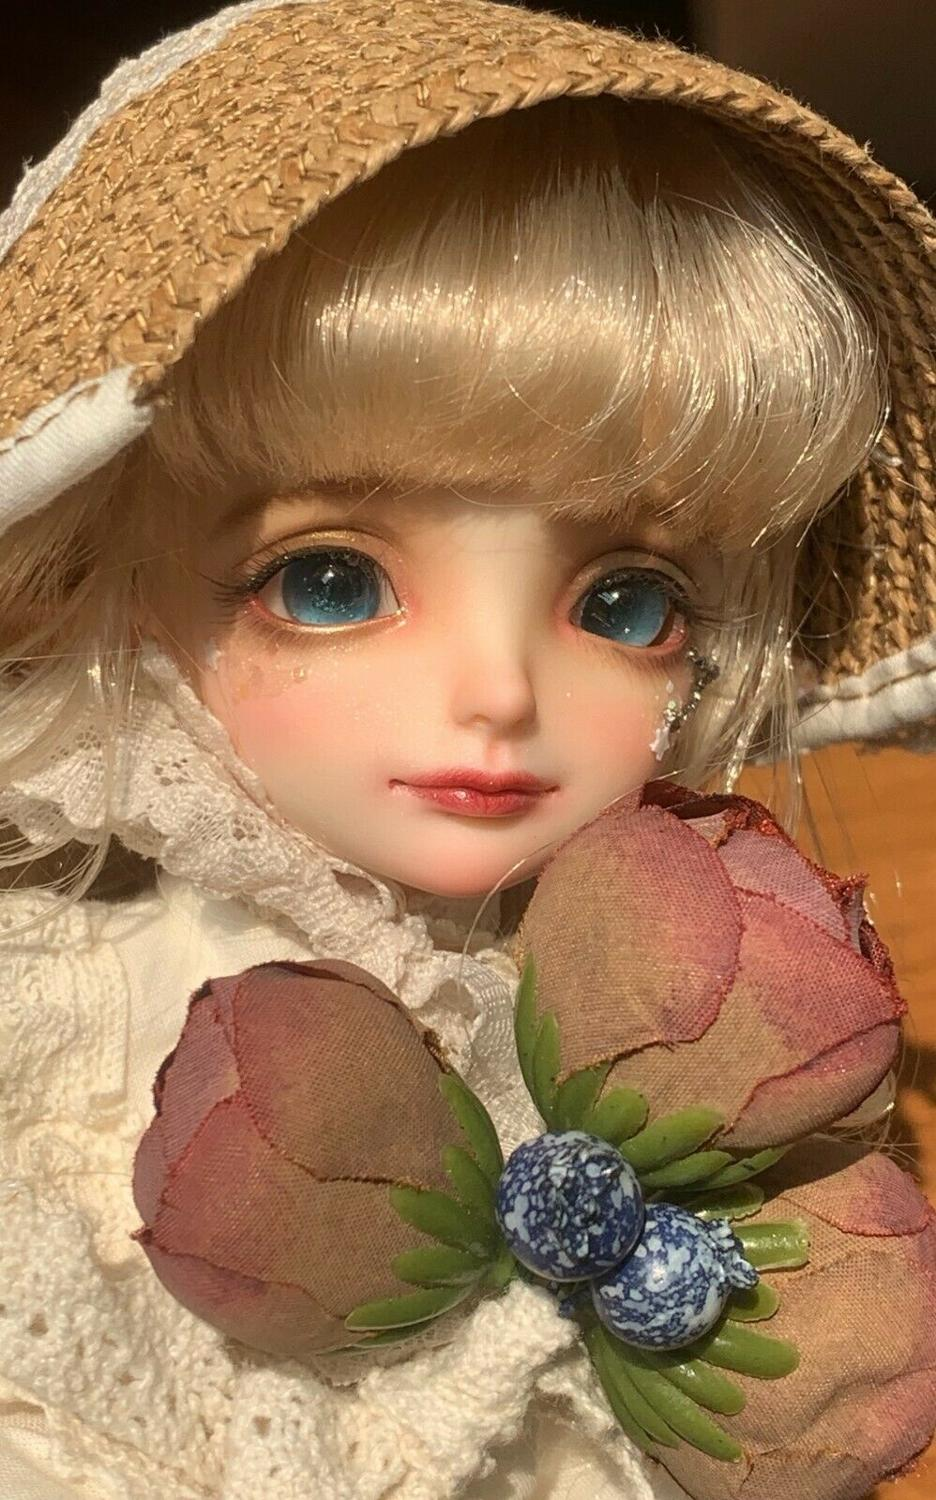 BJD Mini Doll Little 1//8 Unpainted Bare Doll without Any Make Up Resin Toy